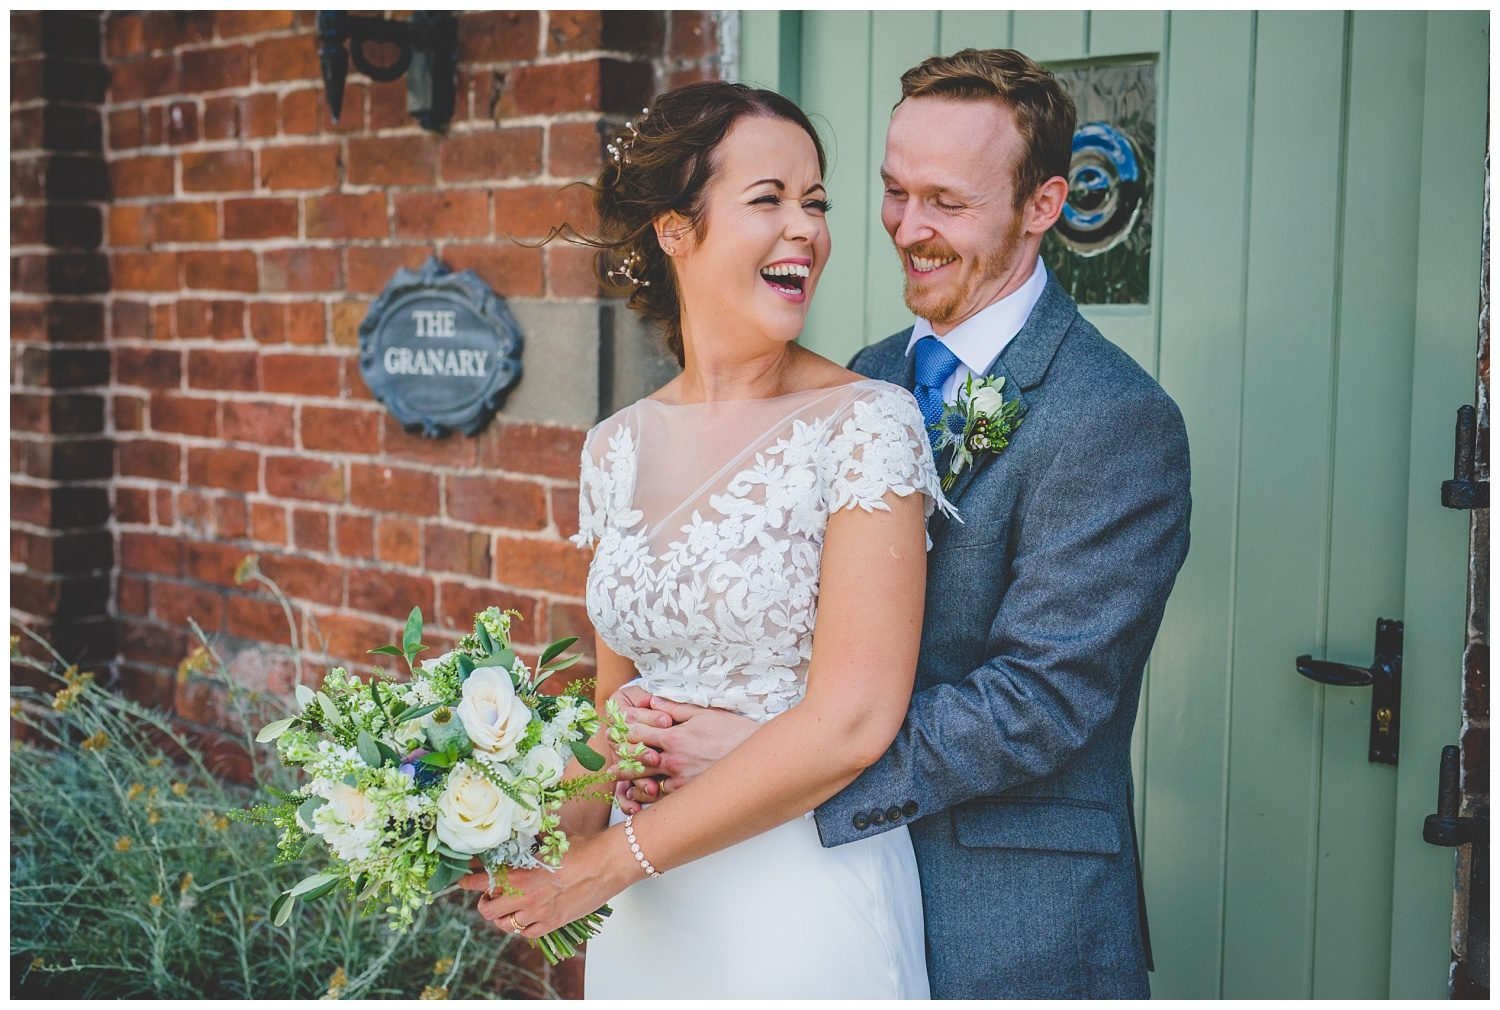 Relaxed wedding photography at Sandhole Oak Barn